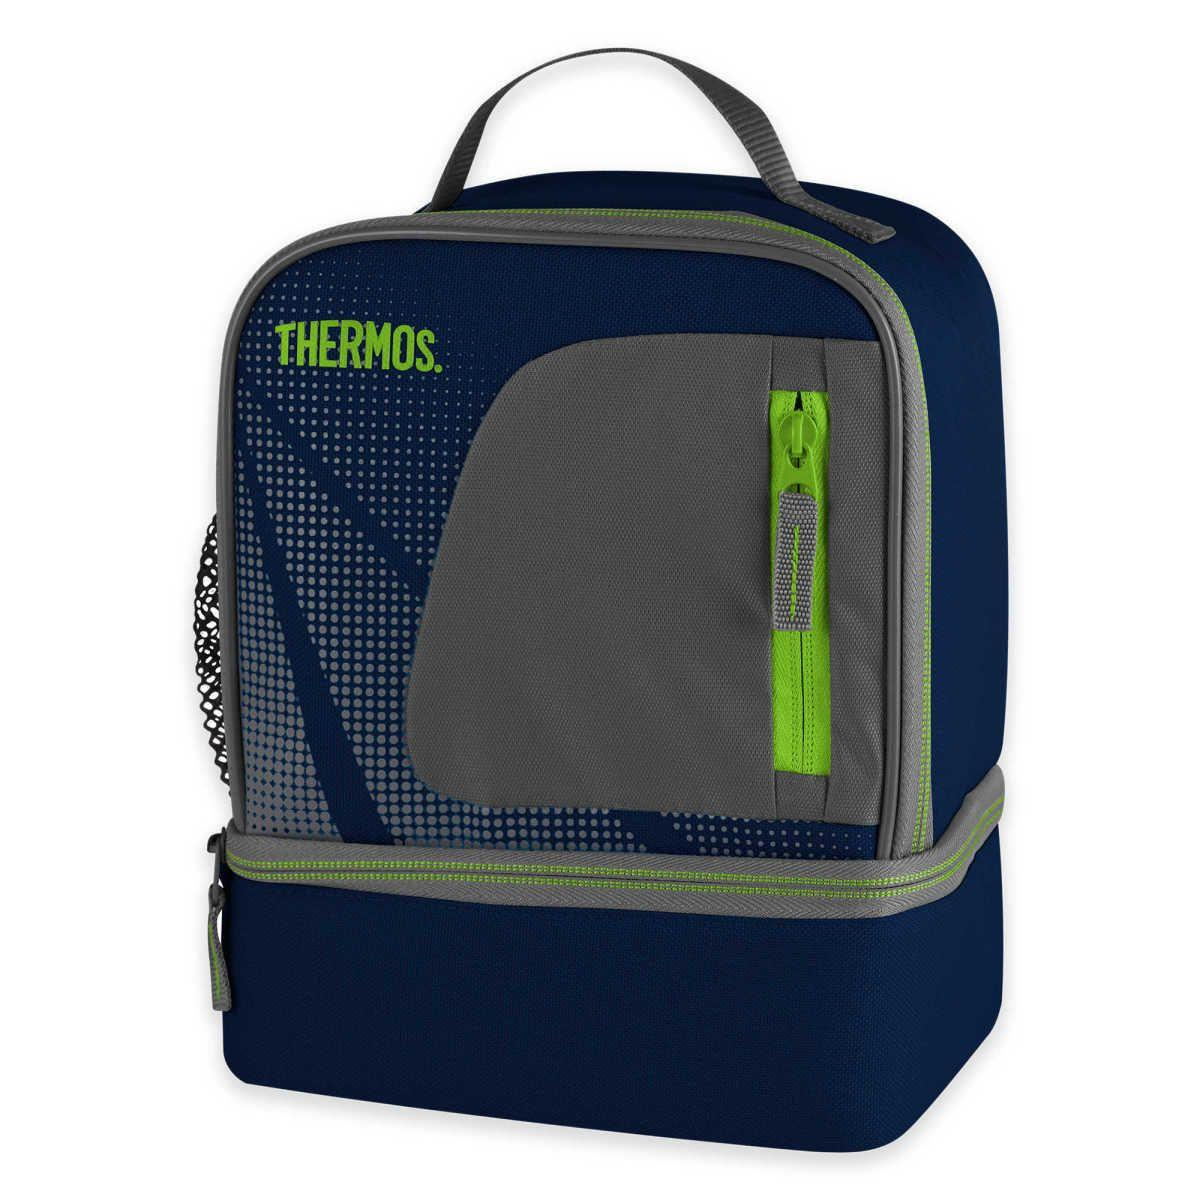 Thermos Insulated Radiance Dual Lunch Kit In Navy